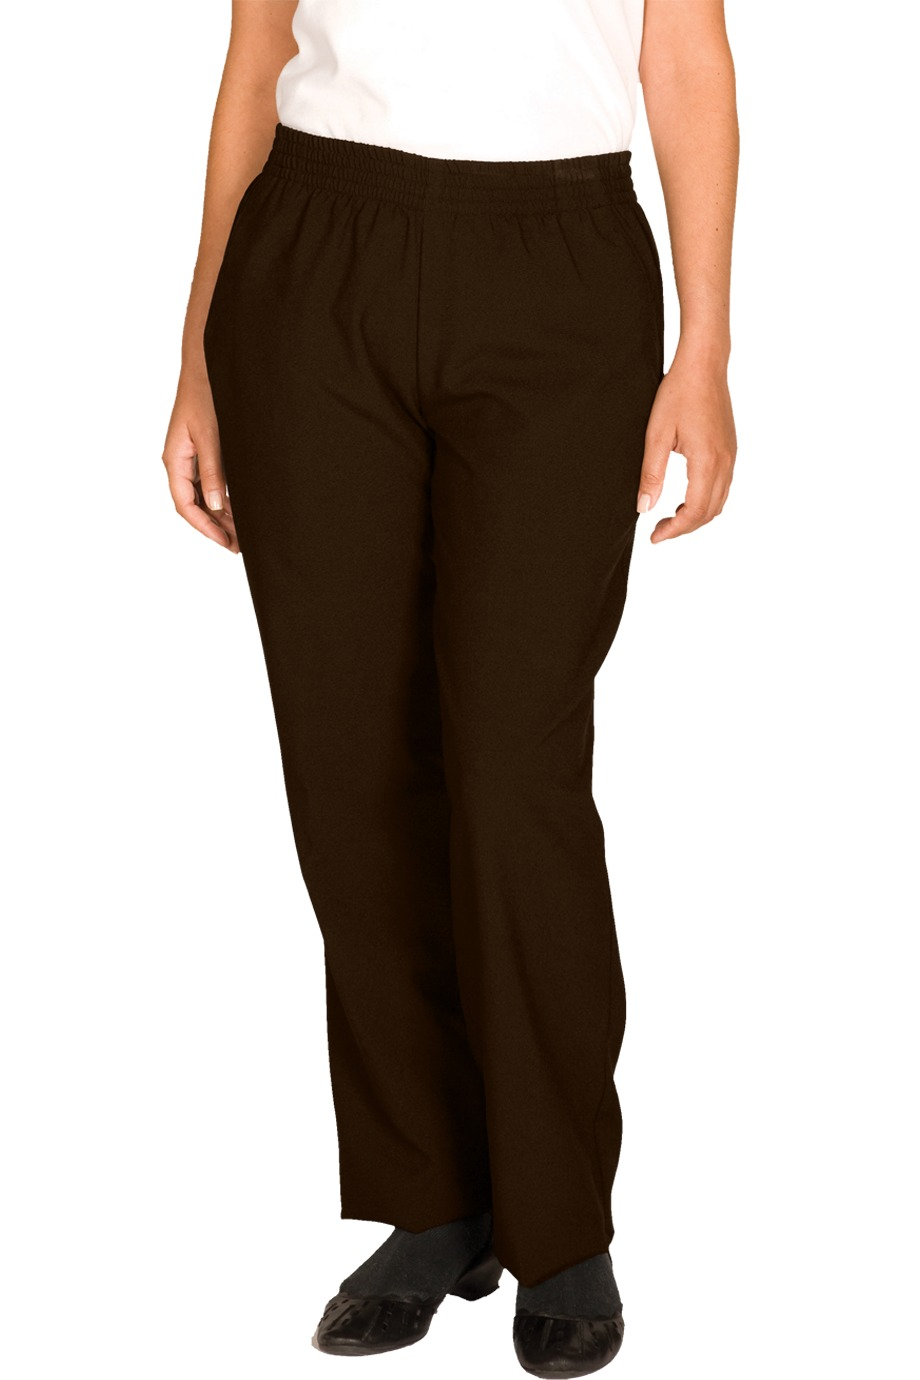 Edwards Garment 8888 - Women's Solid Pull-On-Pant